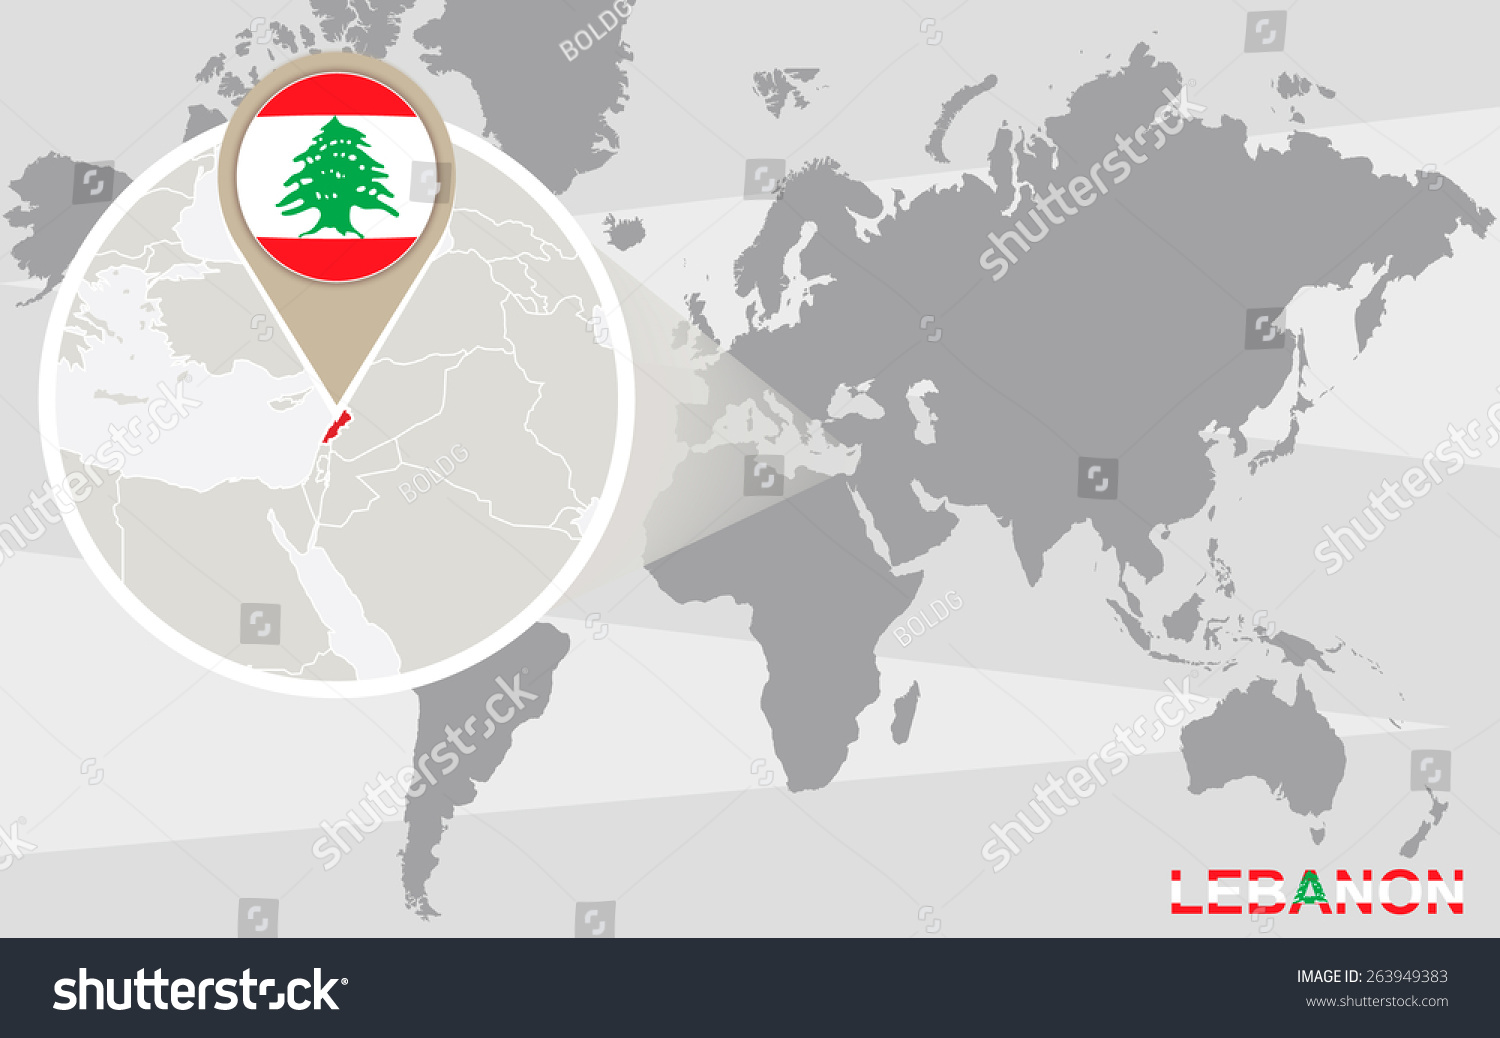 World Map Magnified Lebanon Lebanon Flag Stock Vector (Royalty Free ...